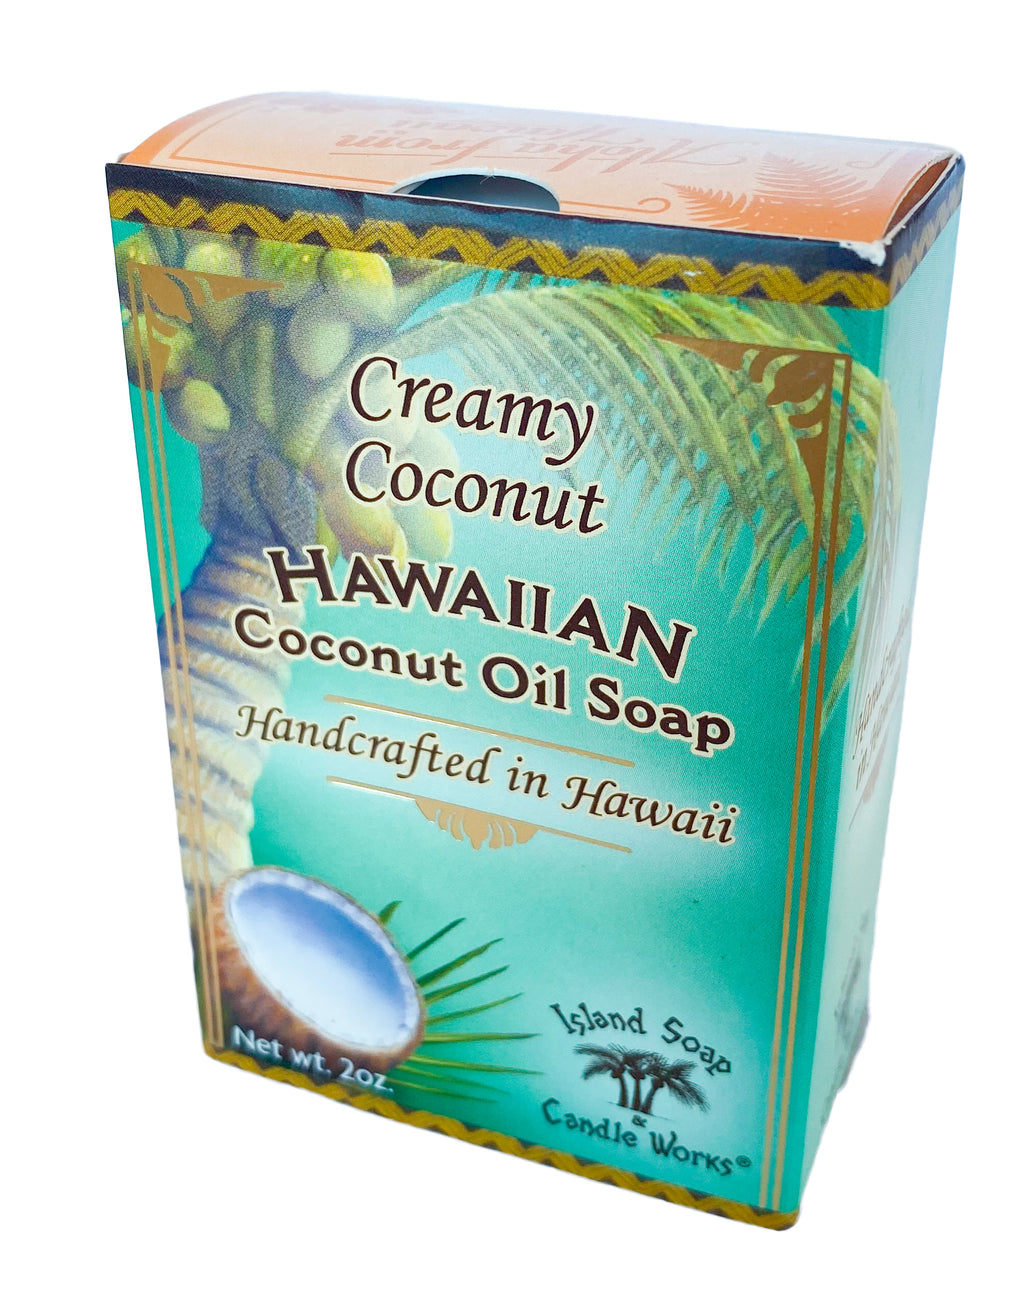 Creamy Coconut - 2 oz. Coconut and Palm Oil Soap